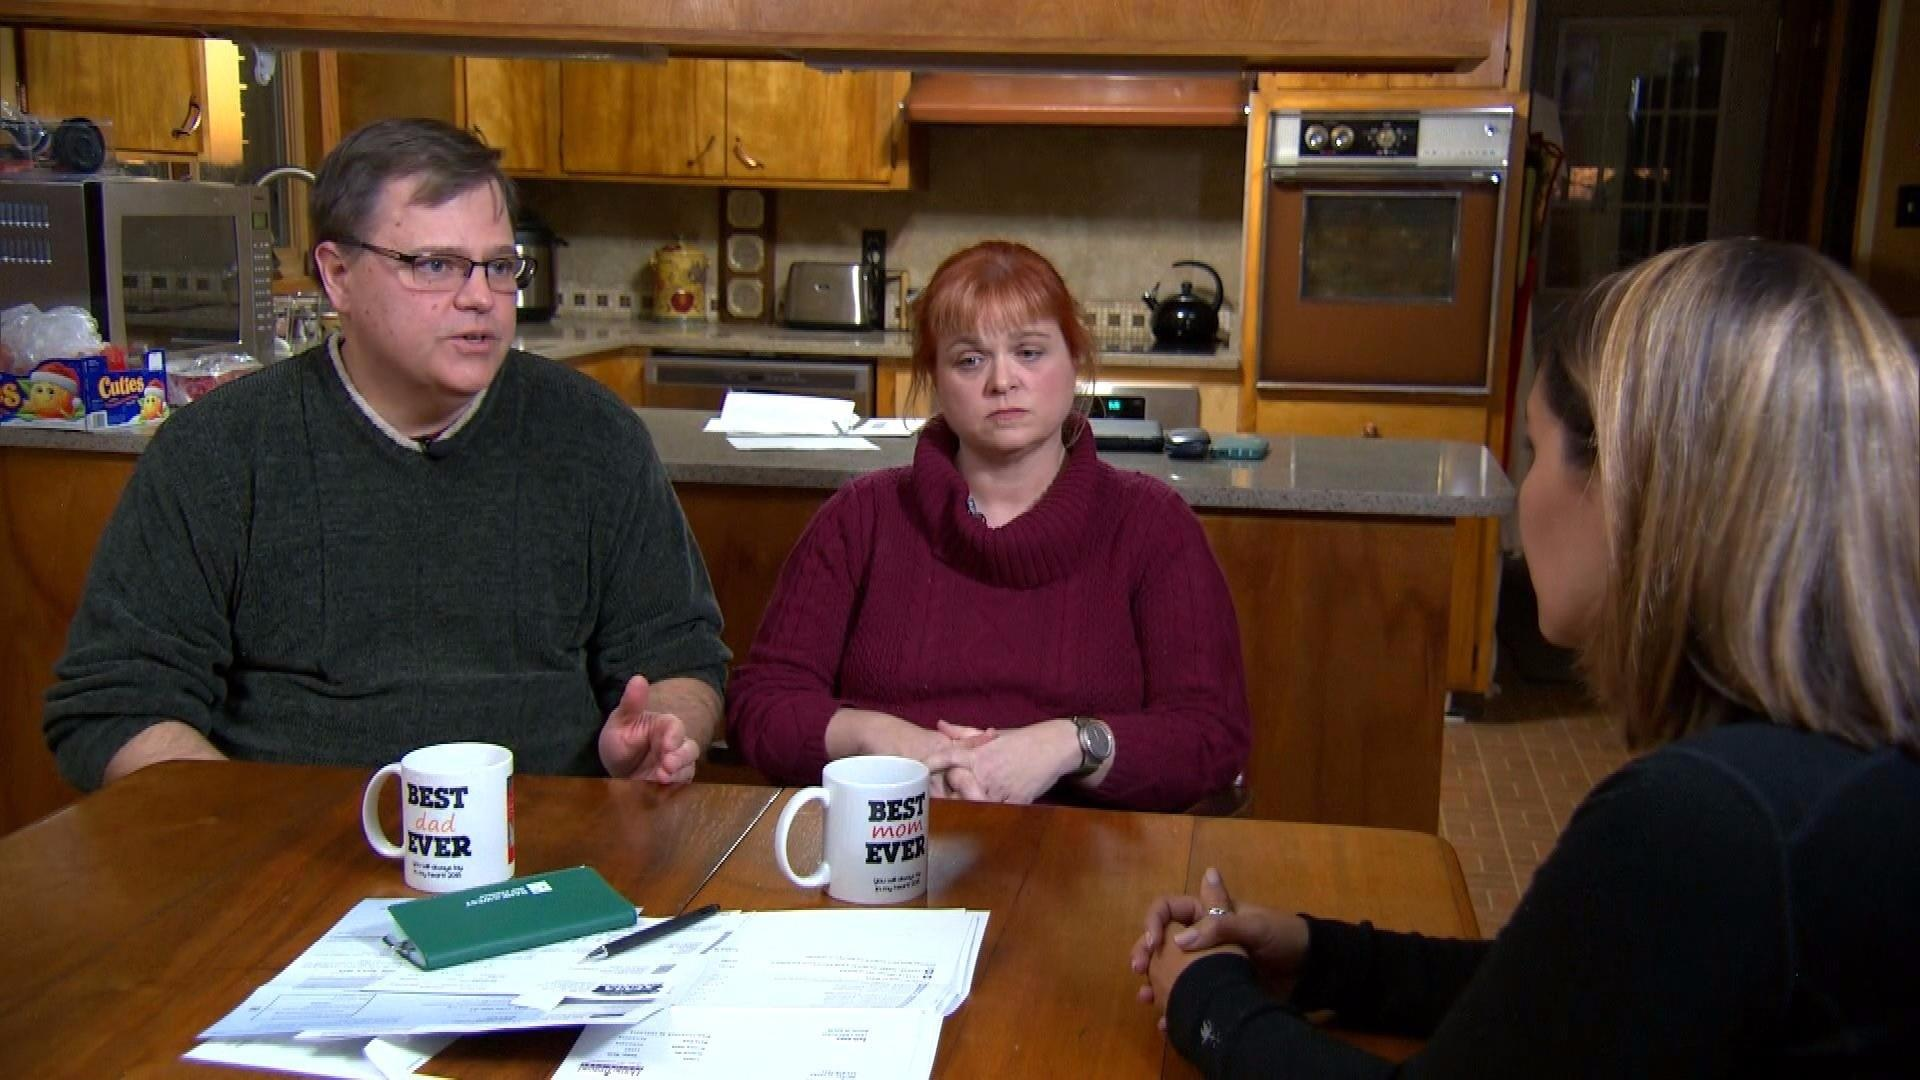 Furloughed worker: Whole families are feeling impact of shutdown